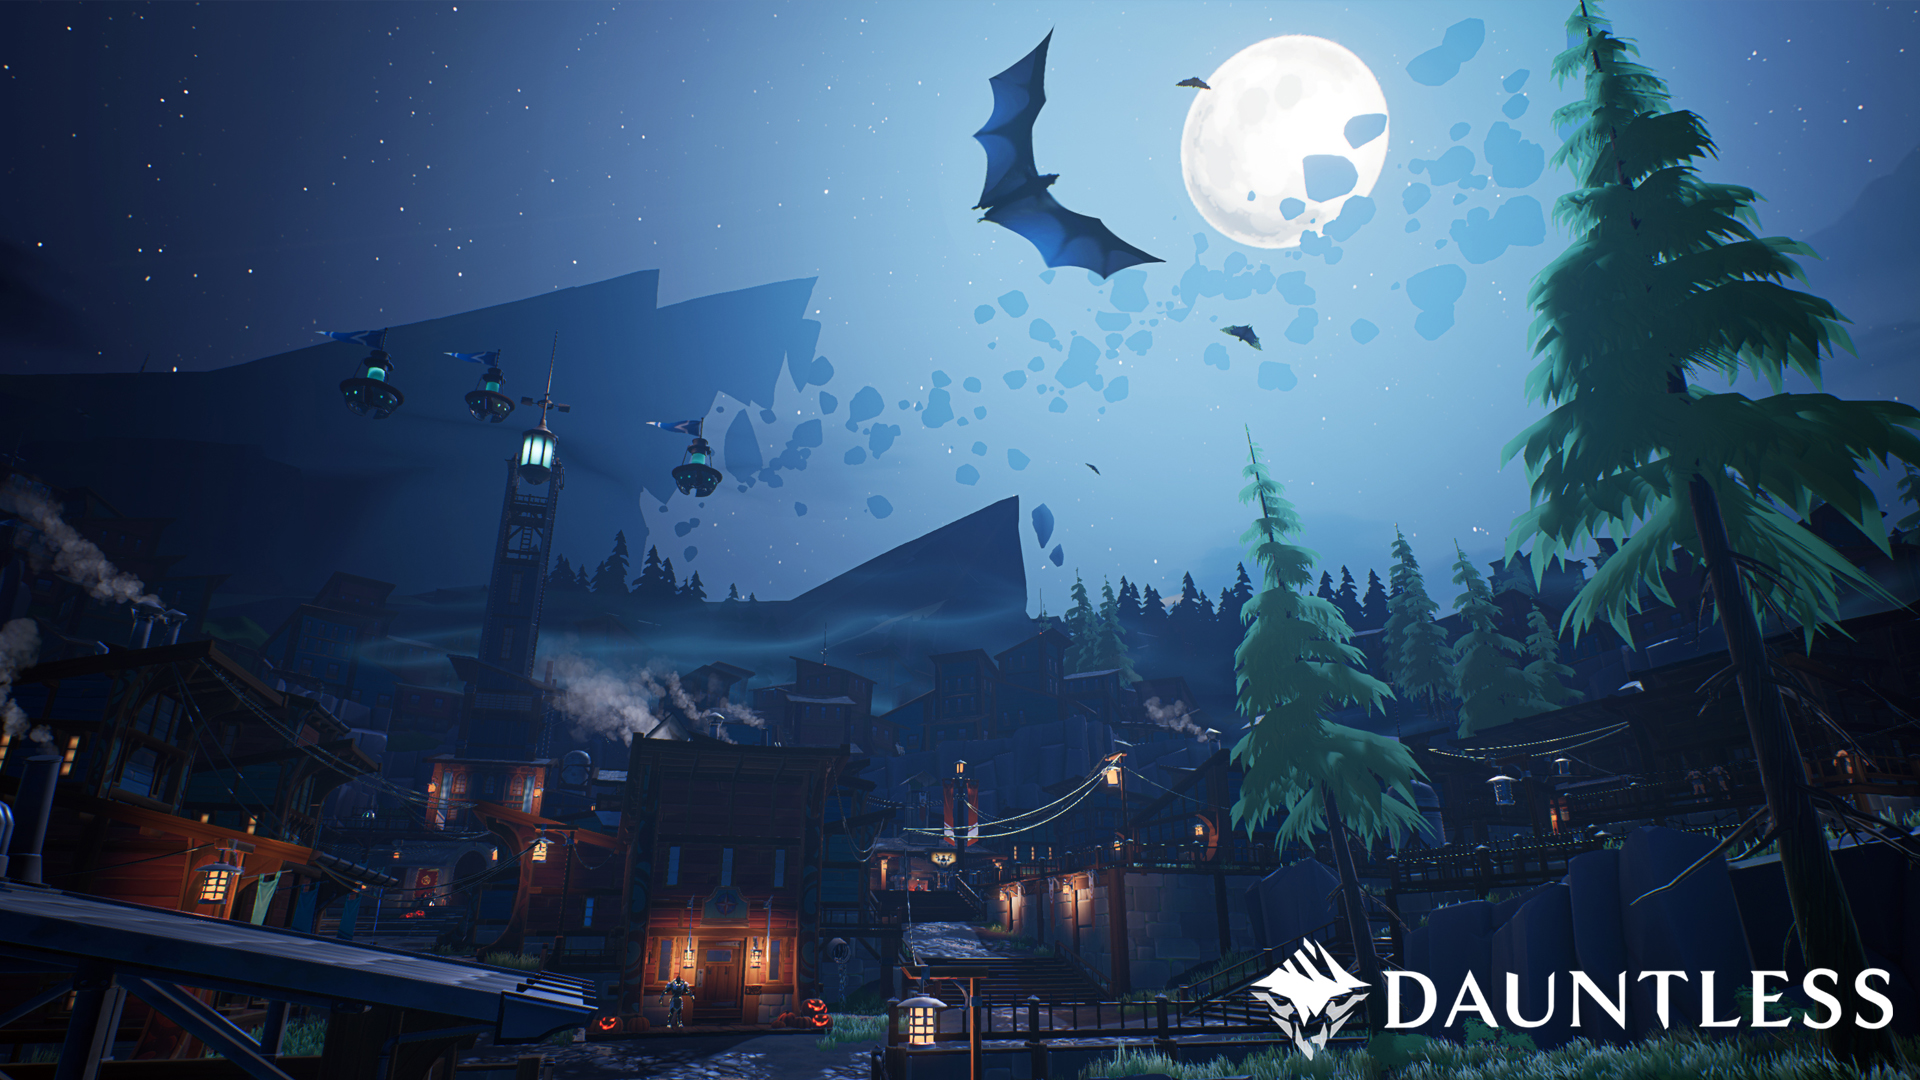 Dauntless has rolled out a fresh newbie experience and character